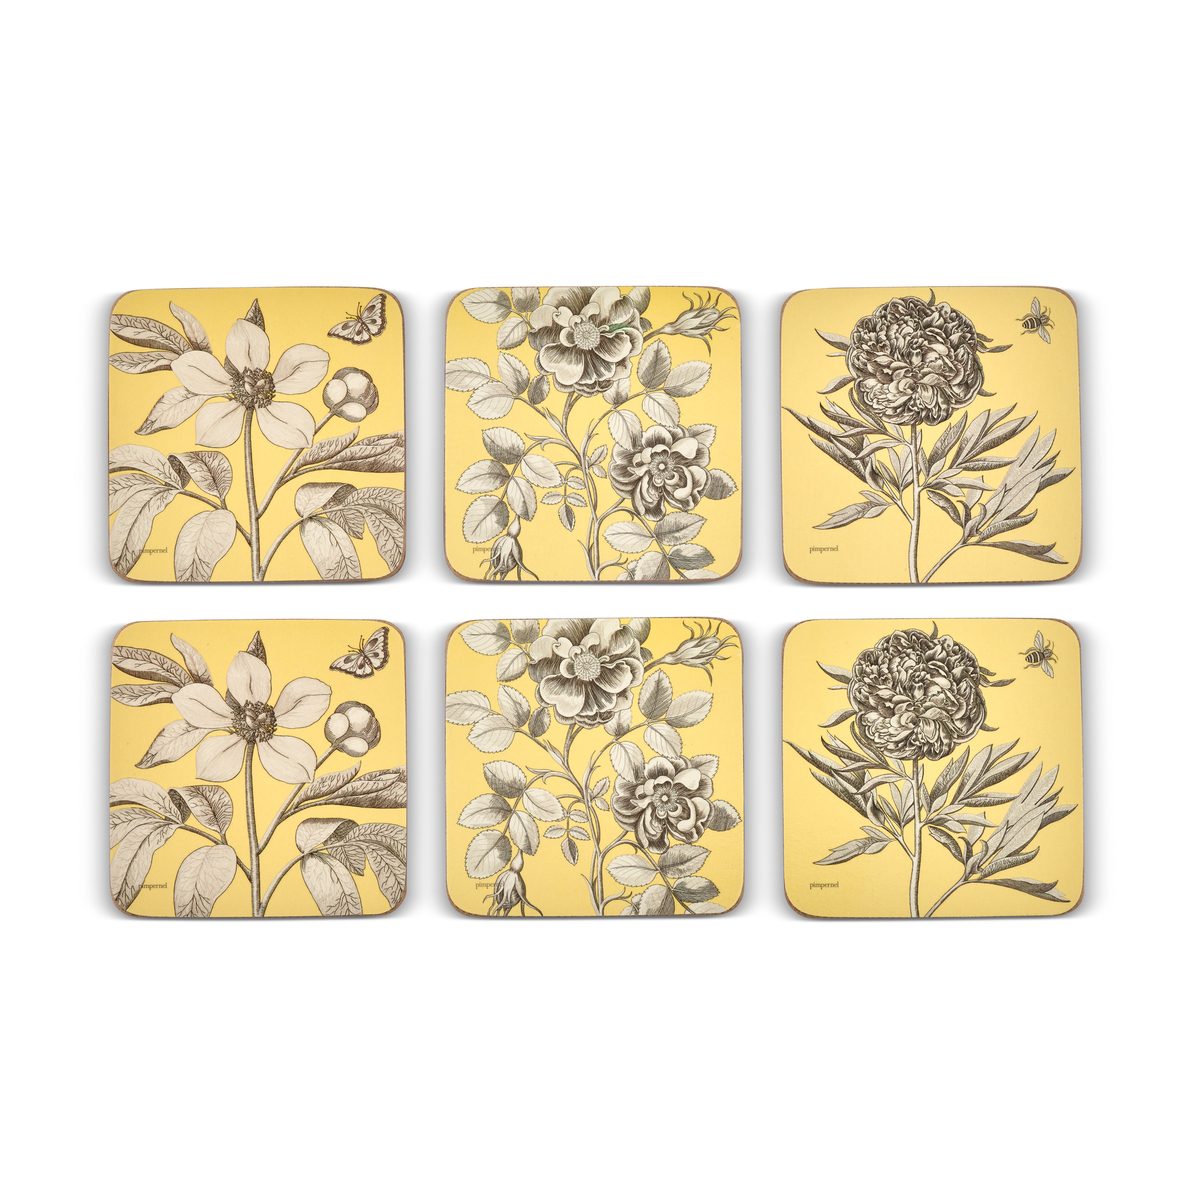 Pimpernel Sanderson Etchings and Roses Yellow Coasters Set of 6 image number 2